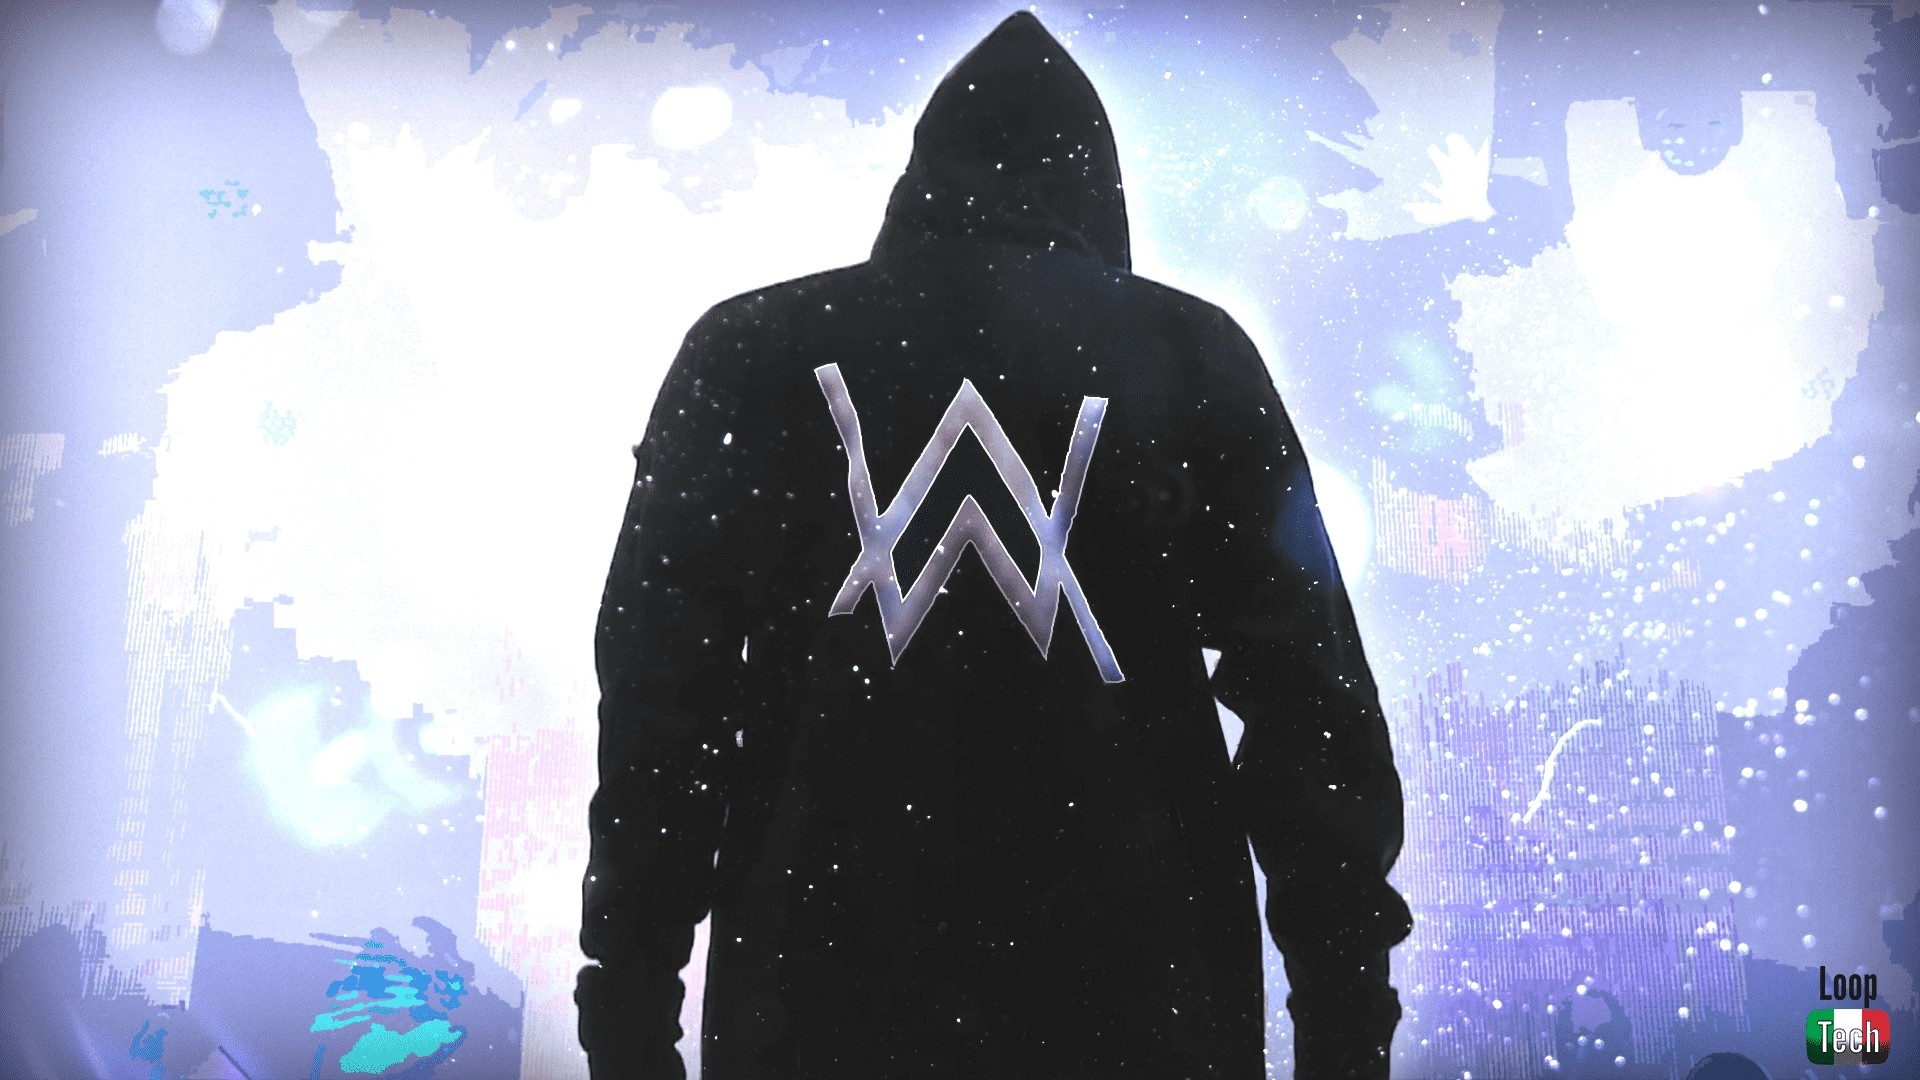 Alan Walker Wallpaper theme